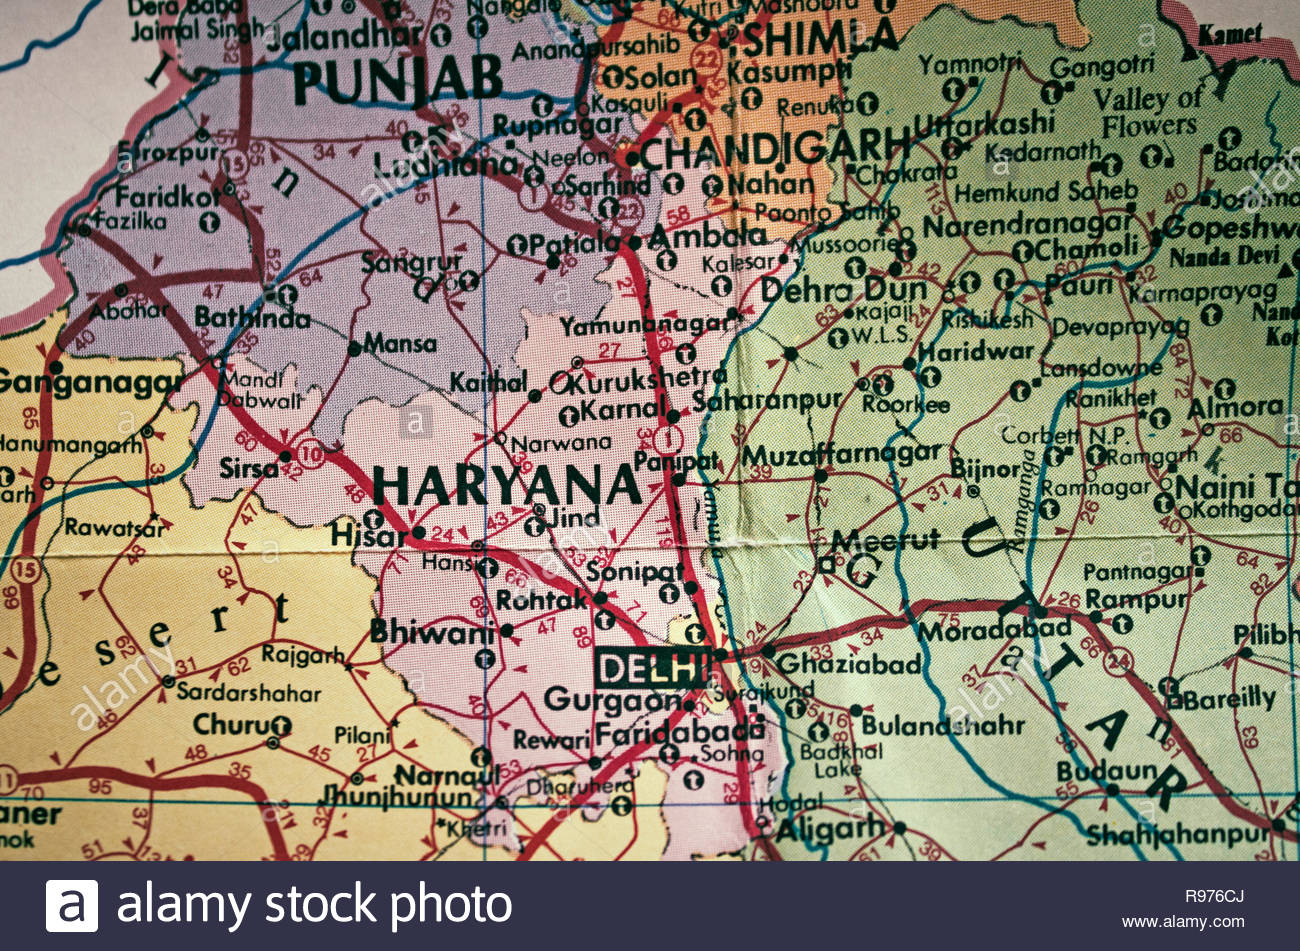 Old tourist map of India. India. - Stock Image